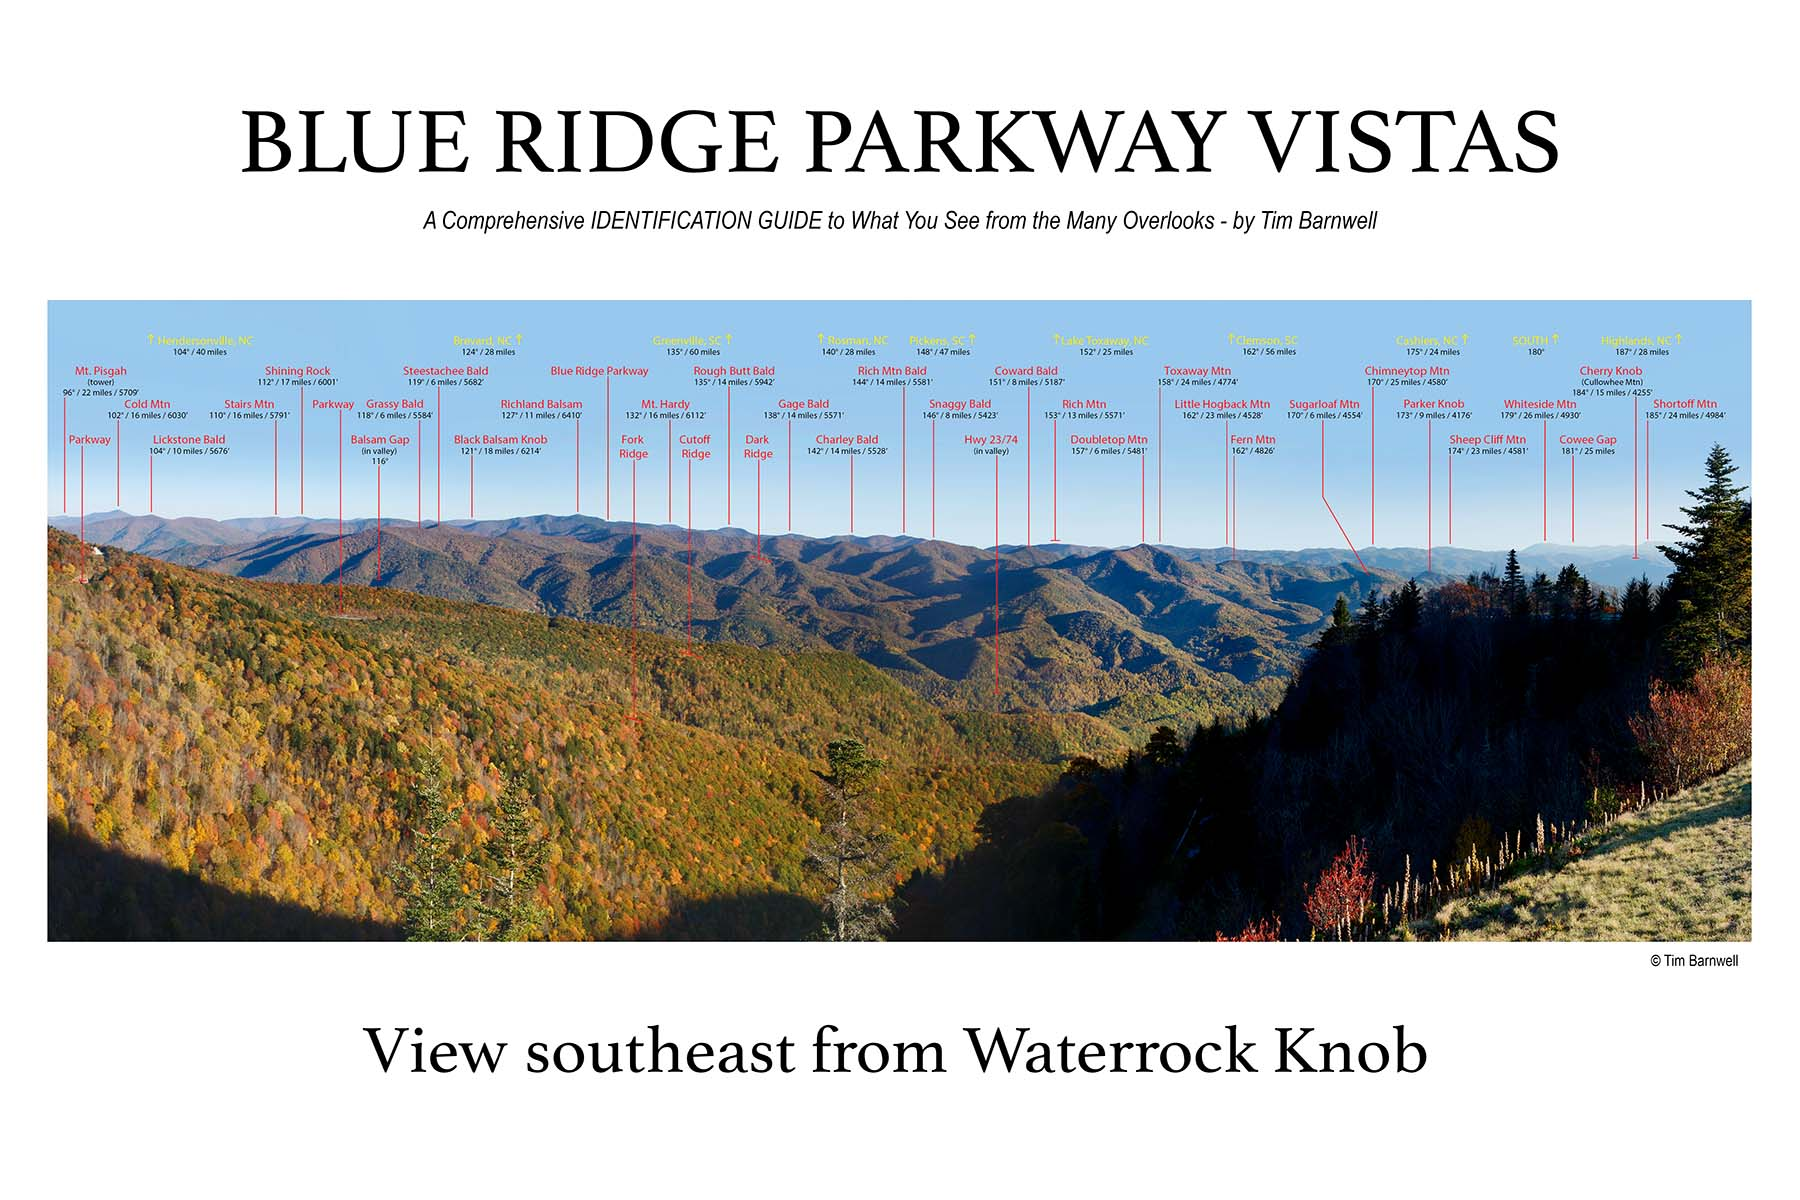 blue ridge parkway vistas great smoky mountains nnational park vistas book signings for saleview se from waterrock knob poster tim barnwell